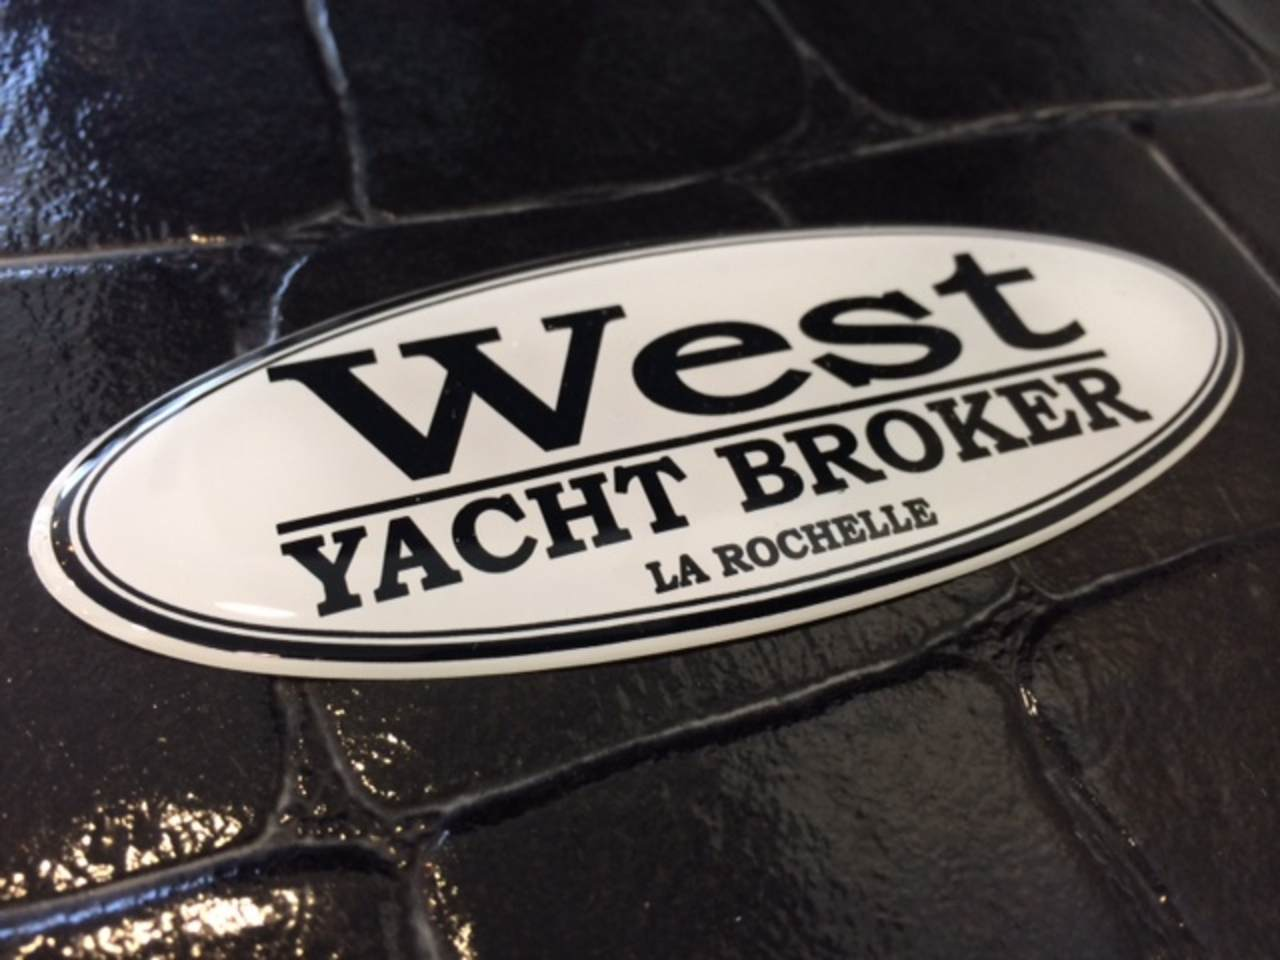 - WEST YACHT BROKER